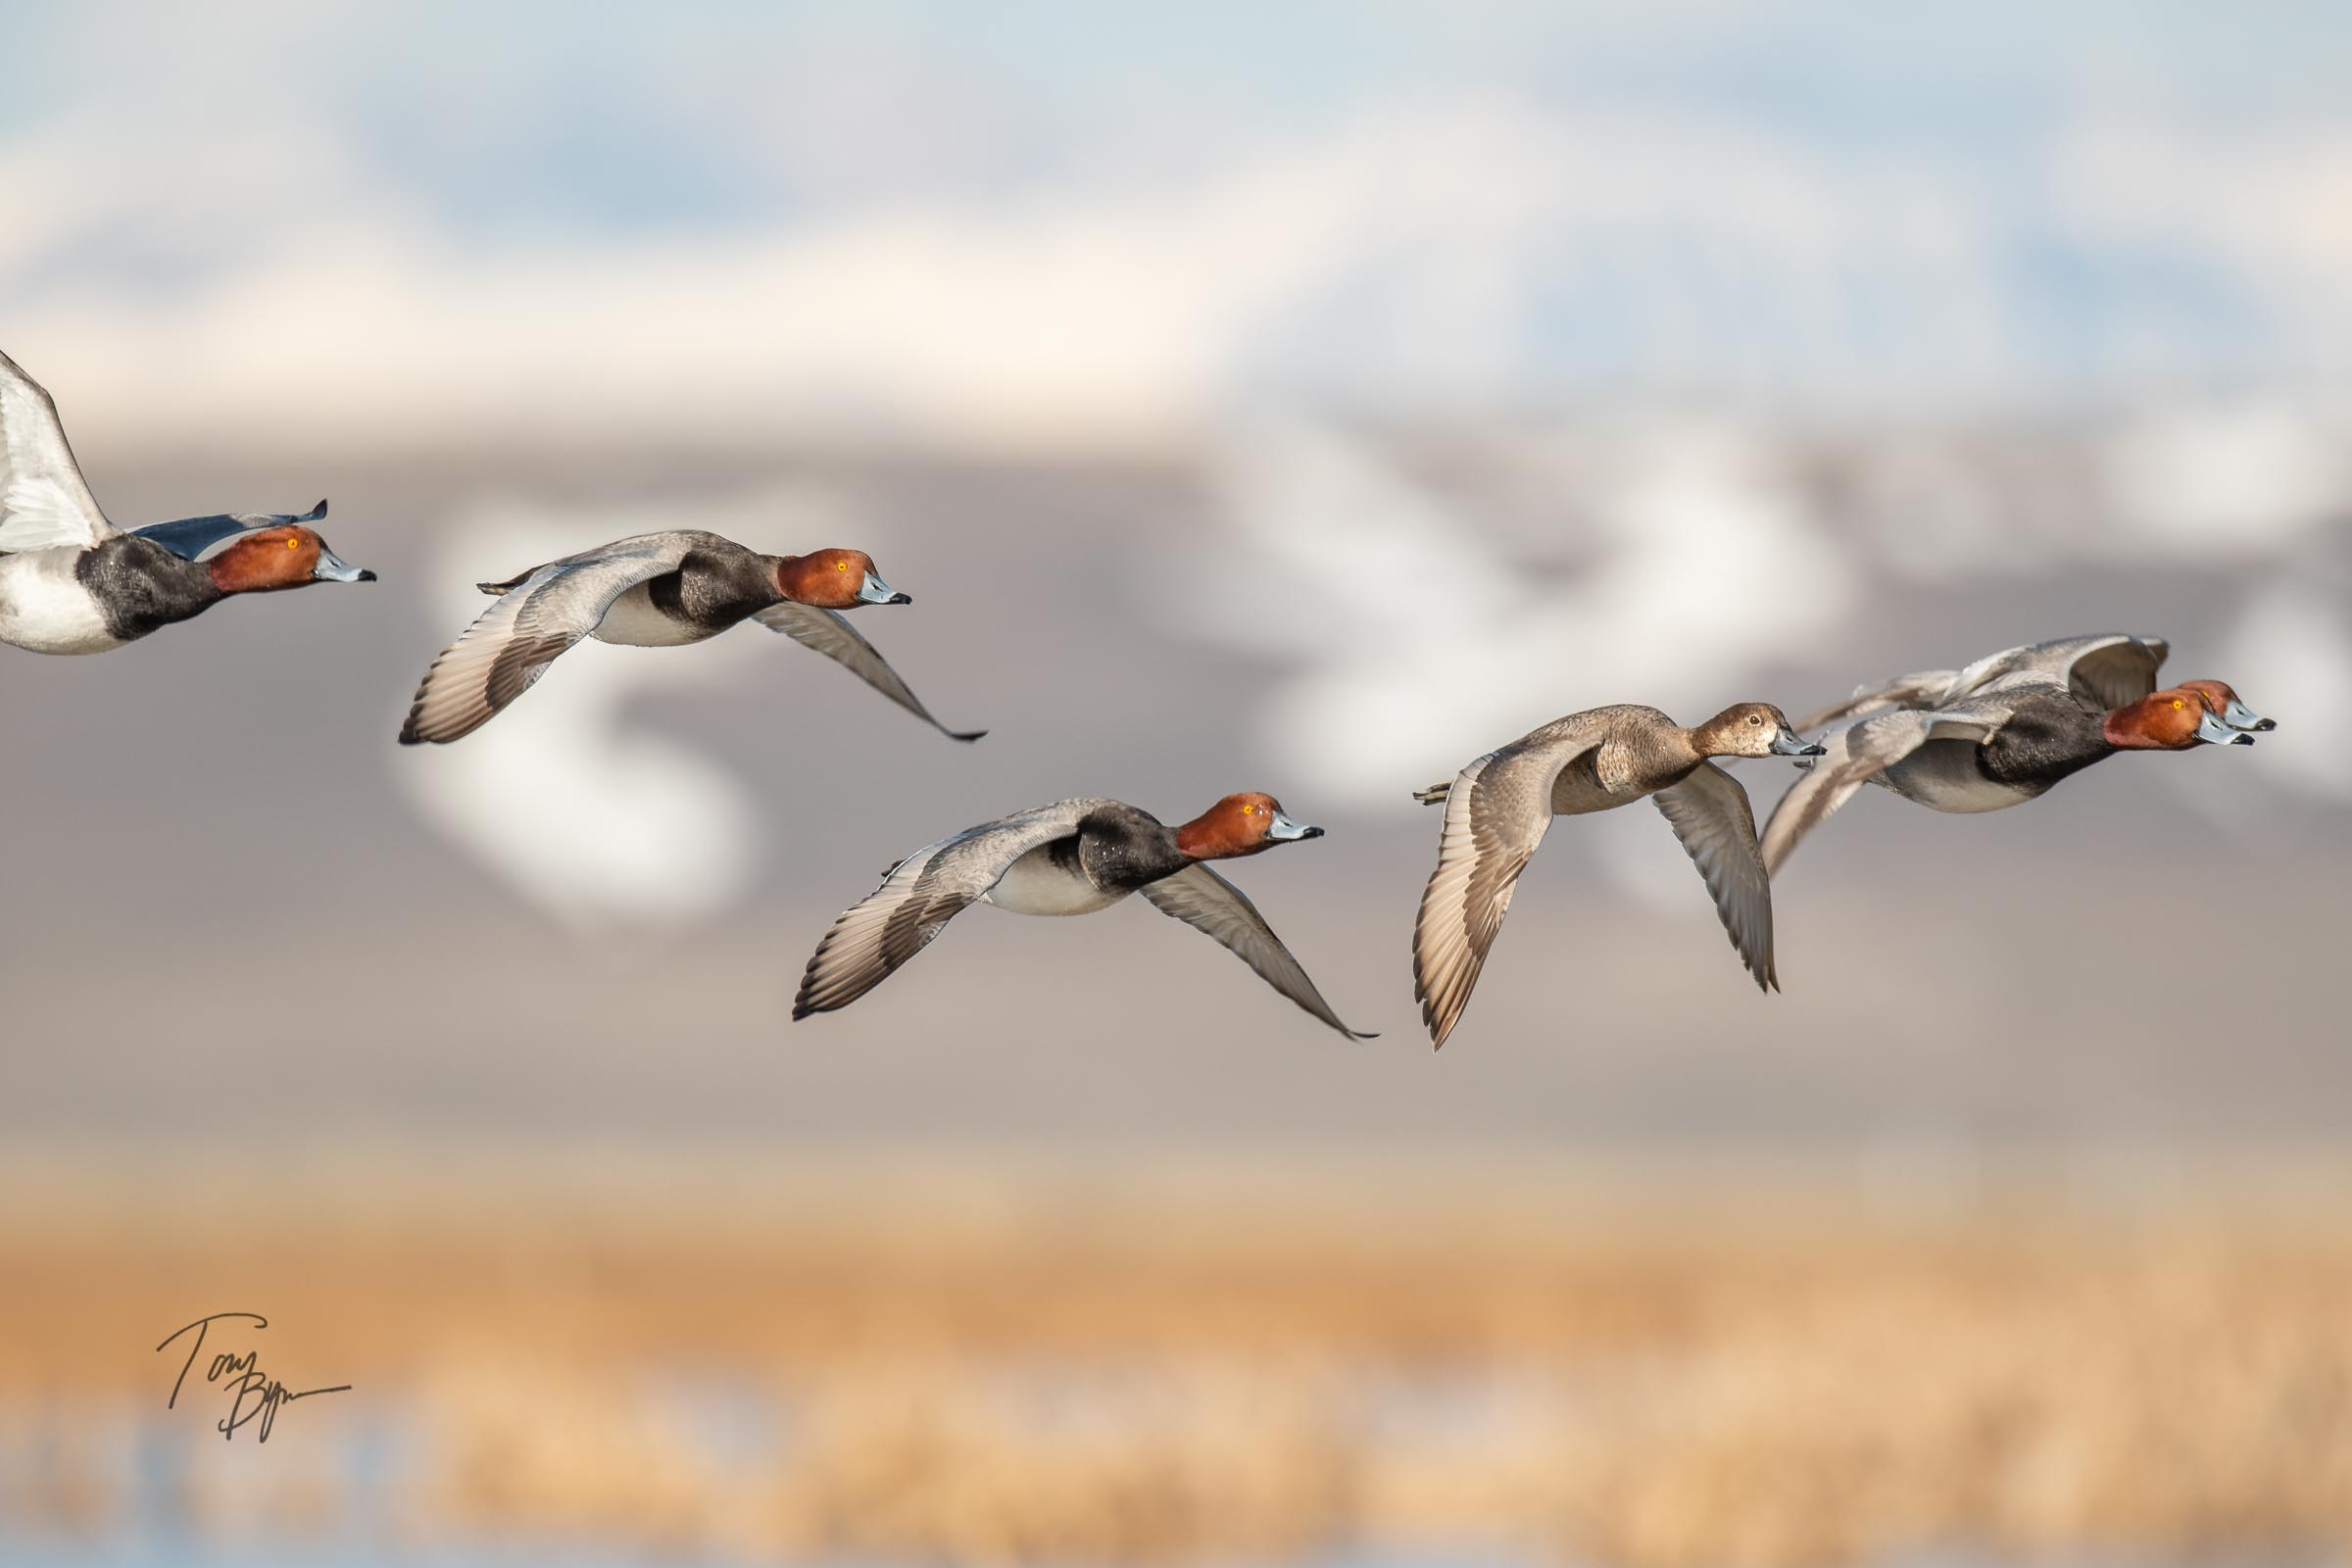 A group of Red-headed ducks with their classic red head and blue bill (breeding season) chasing a hen. © Tony Bynum